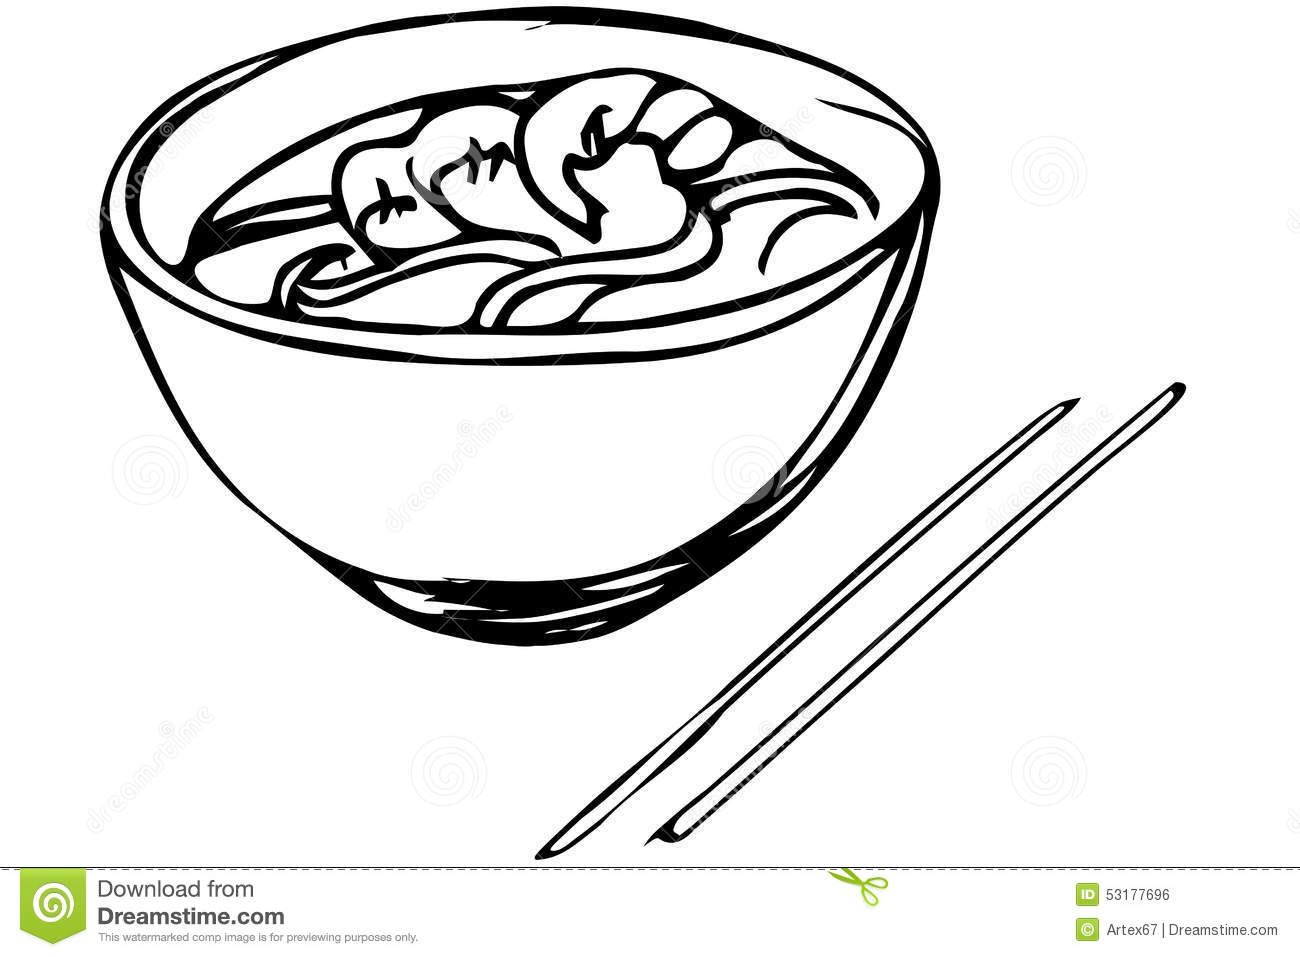 chinese noodles stock illustrations 1 686 chinese noodles stock rh dreamstime com Chef Hat Clip Art Grocery Cart Clip Art